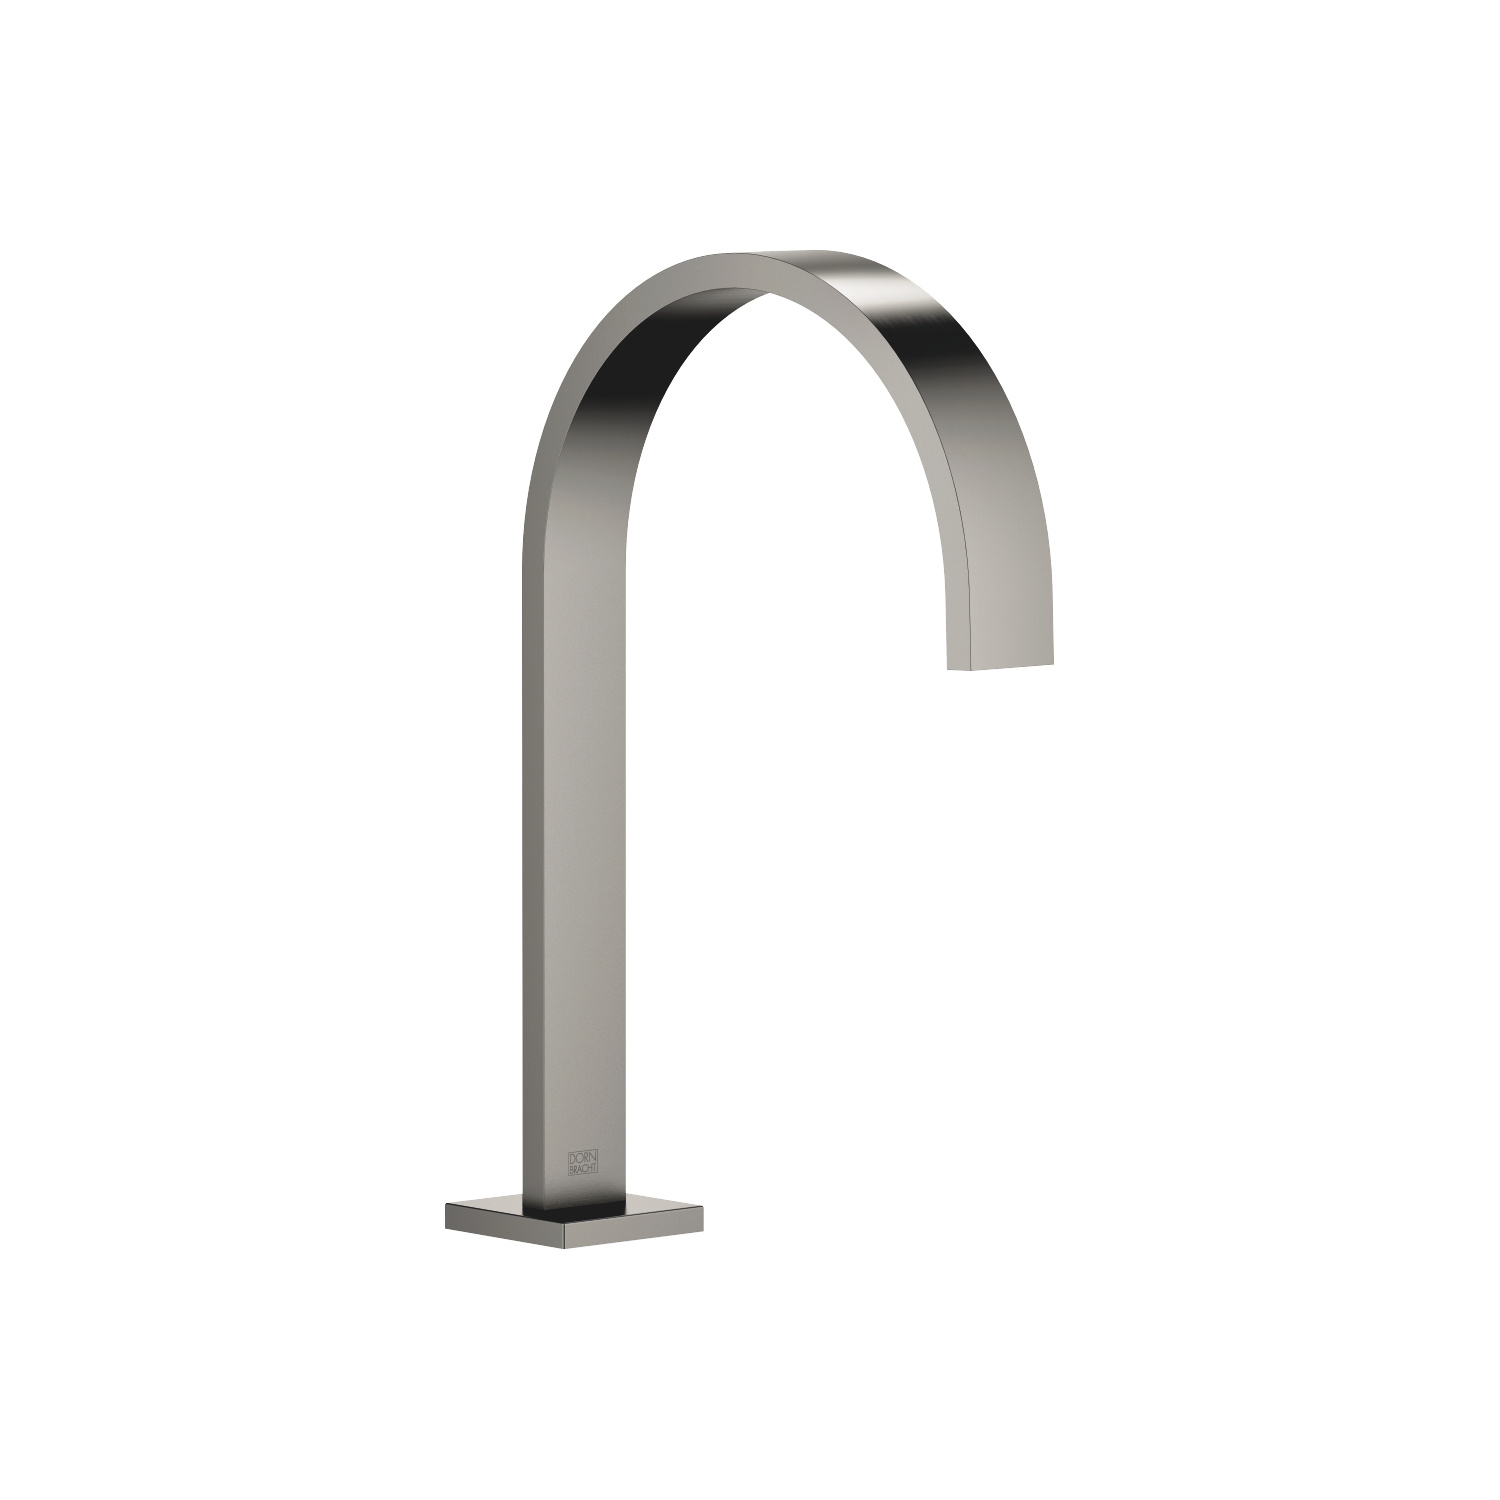 Deck-mounted basin spout without pop-up waste - Dark Platinum matt - 13 716 782-99